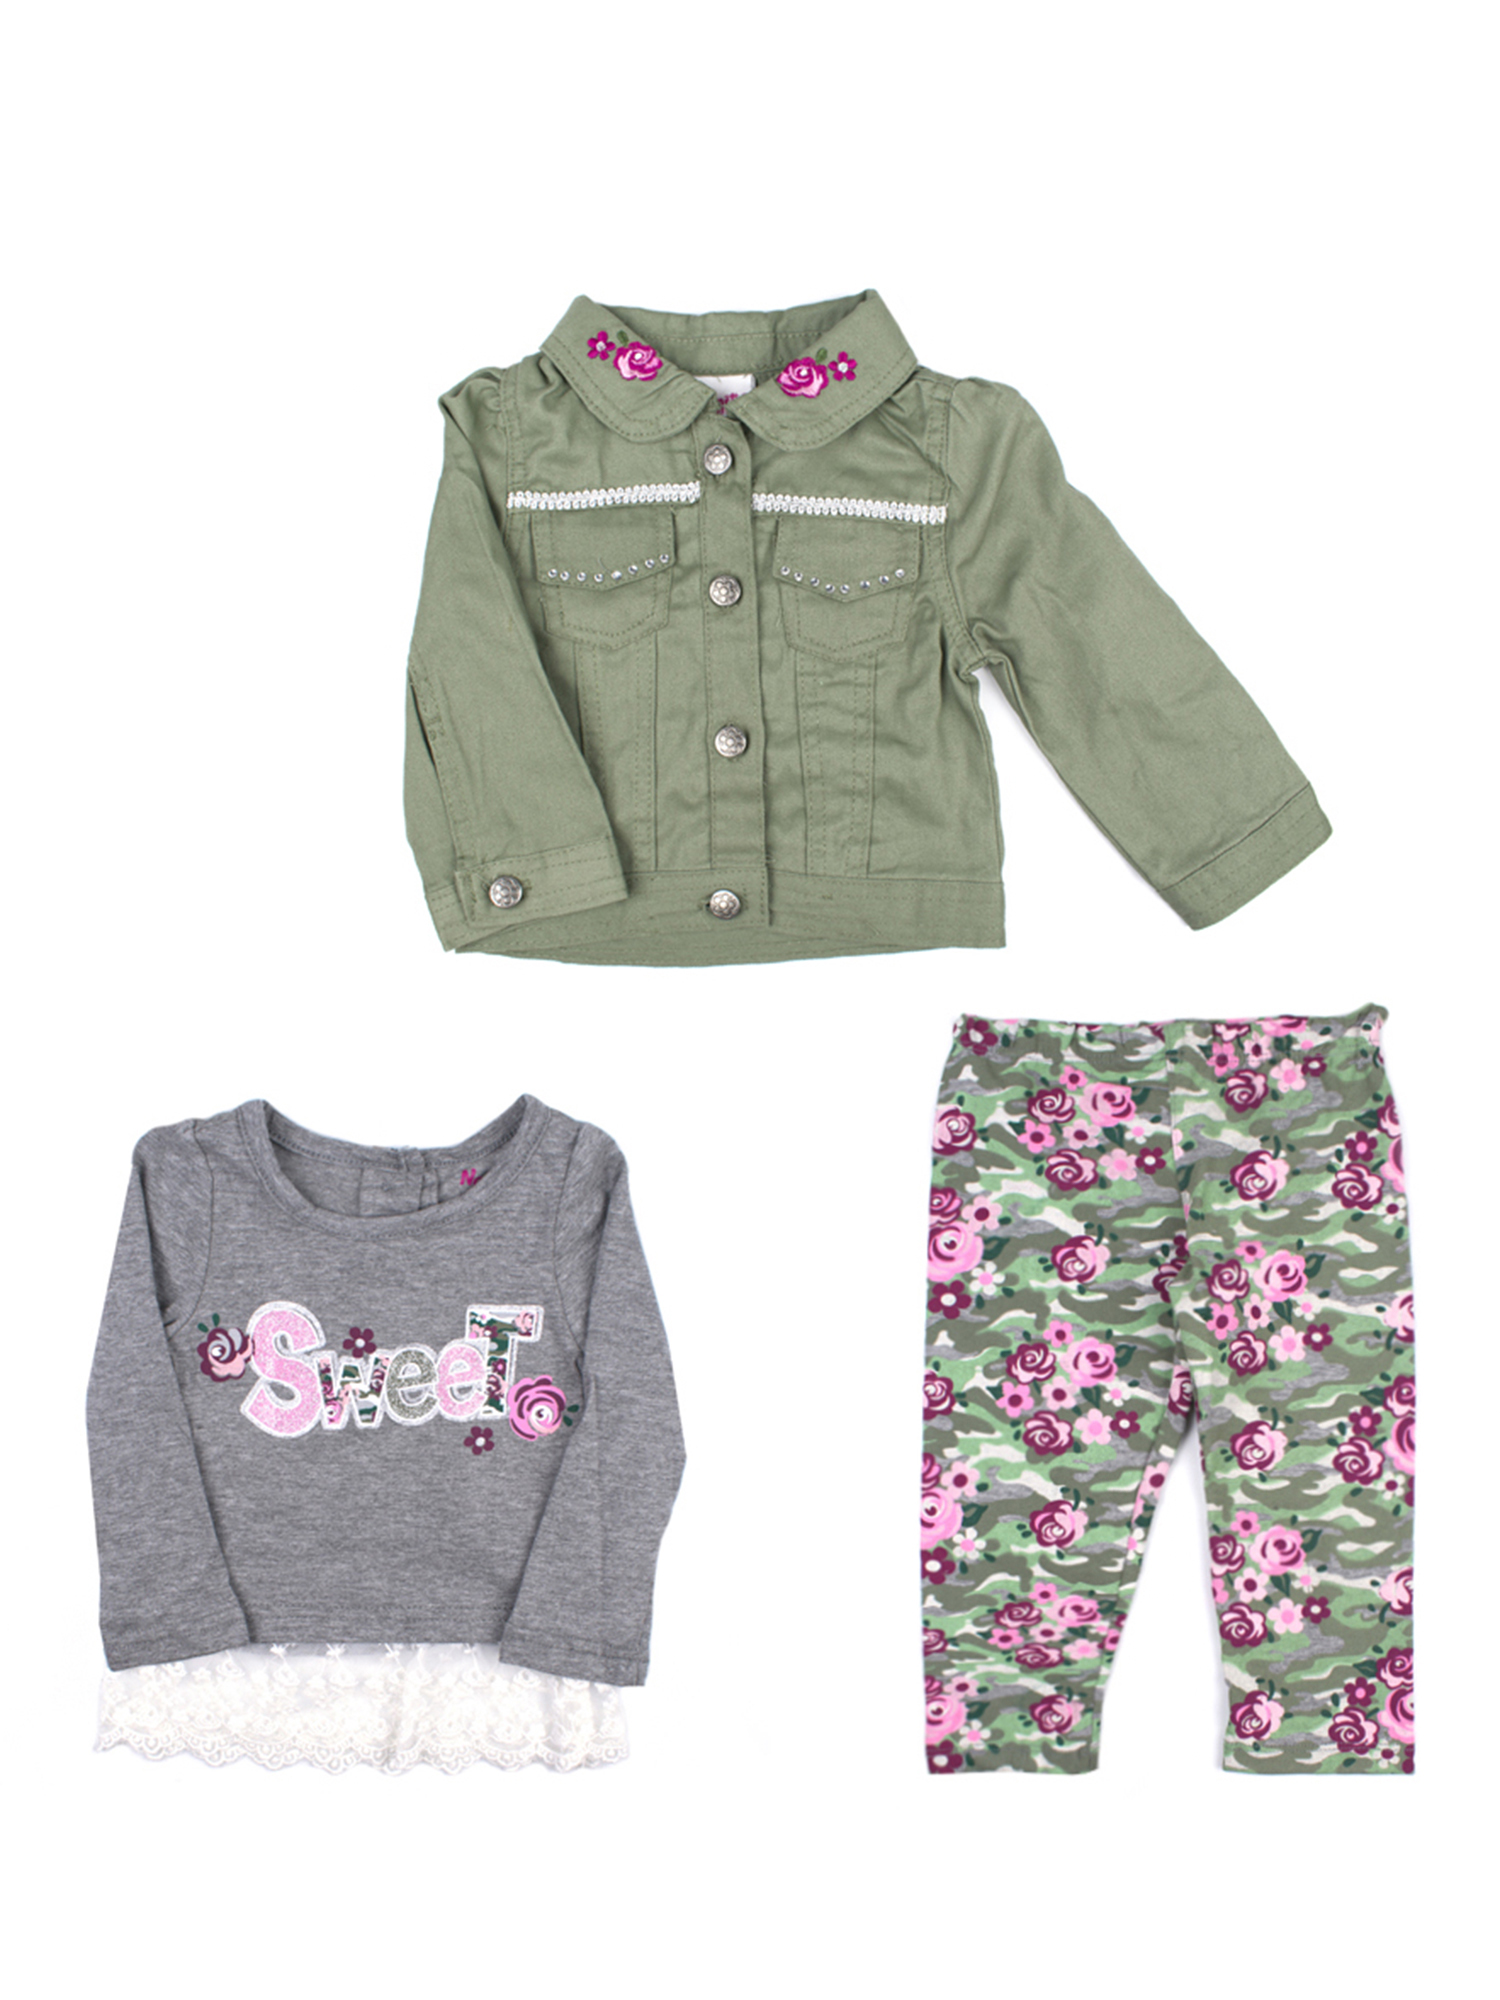 Twill Jacket, Lace Hem Long Sleeve Tee, and Legging, 3-Piece Outfit Set (Little Girls)